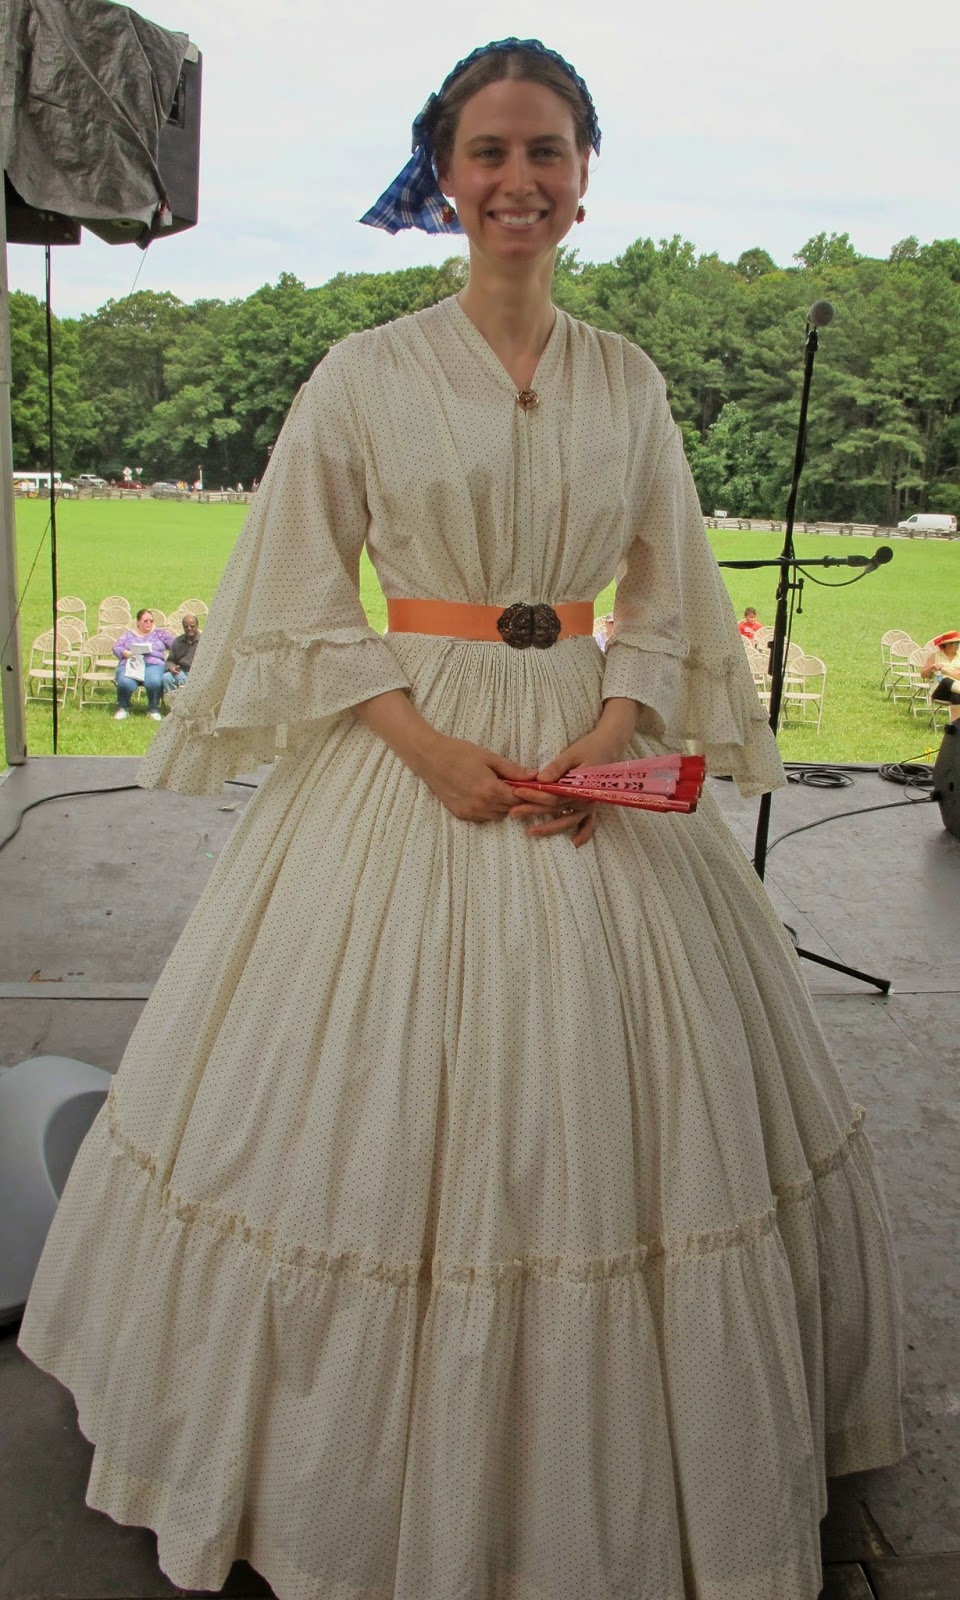 Southron Creations: Anatomy of a Civil War Sheer Dress